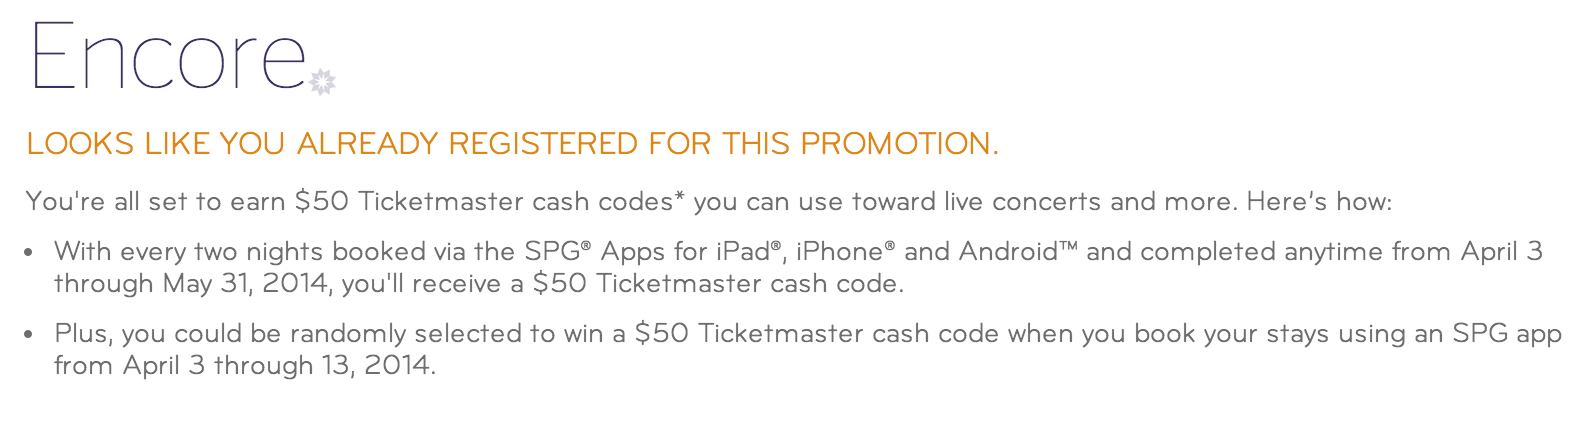 How to use Ticketmaster promo codes. Go to modestokeetonl4jflm.gq then select the items you wish to purchase and add them to your shopping cart. Find a promo code on this page. Click to open the code, then click